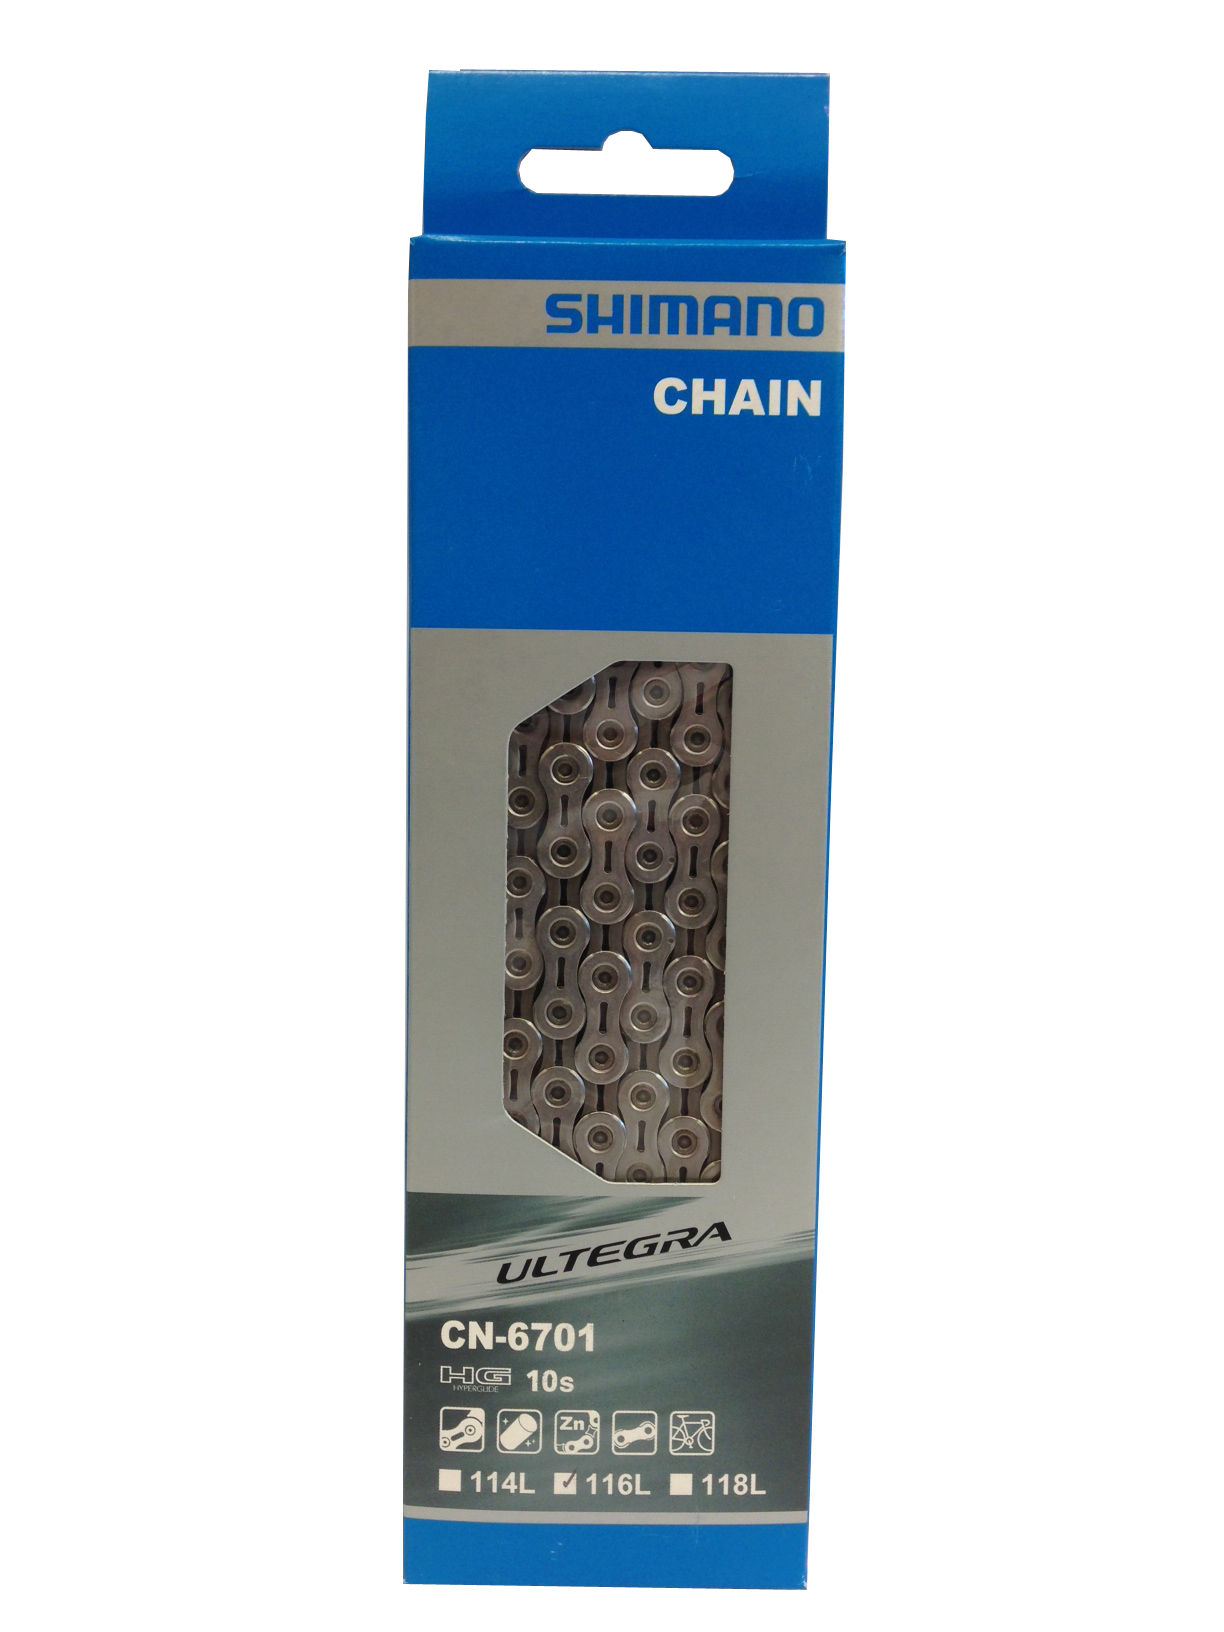 http://www.cycling-parts.ch/images/product_images/original_images/shimano_cn-6701.jpg